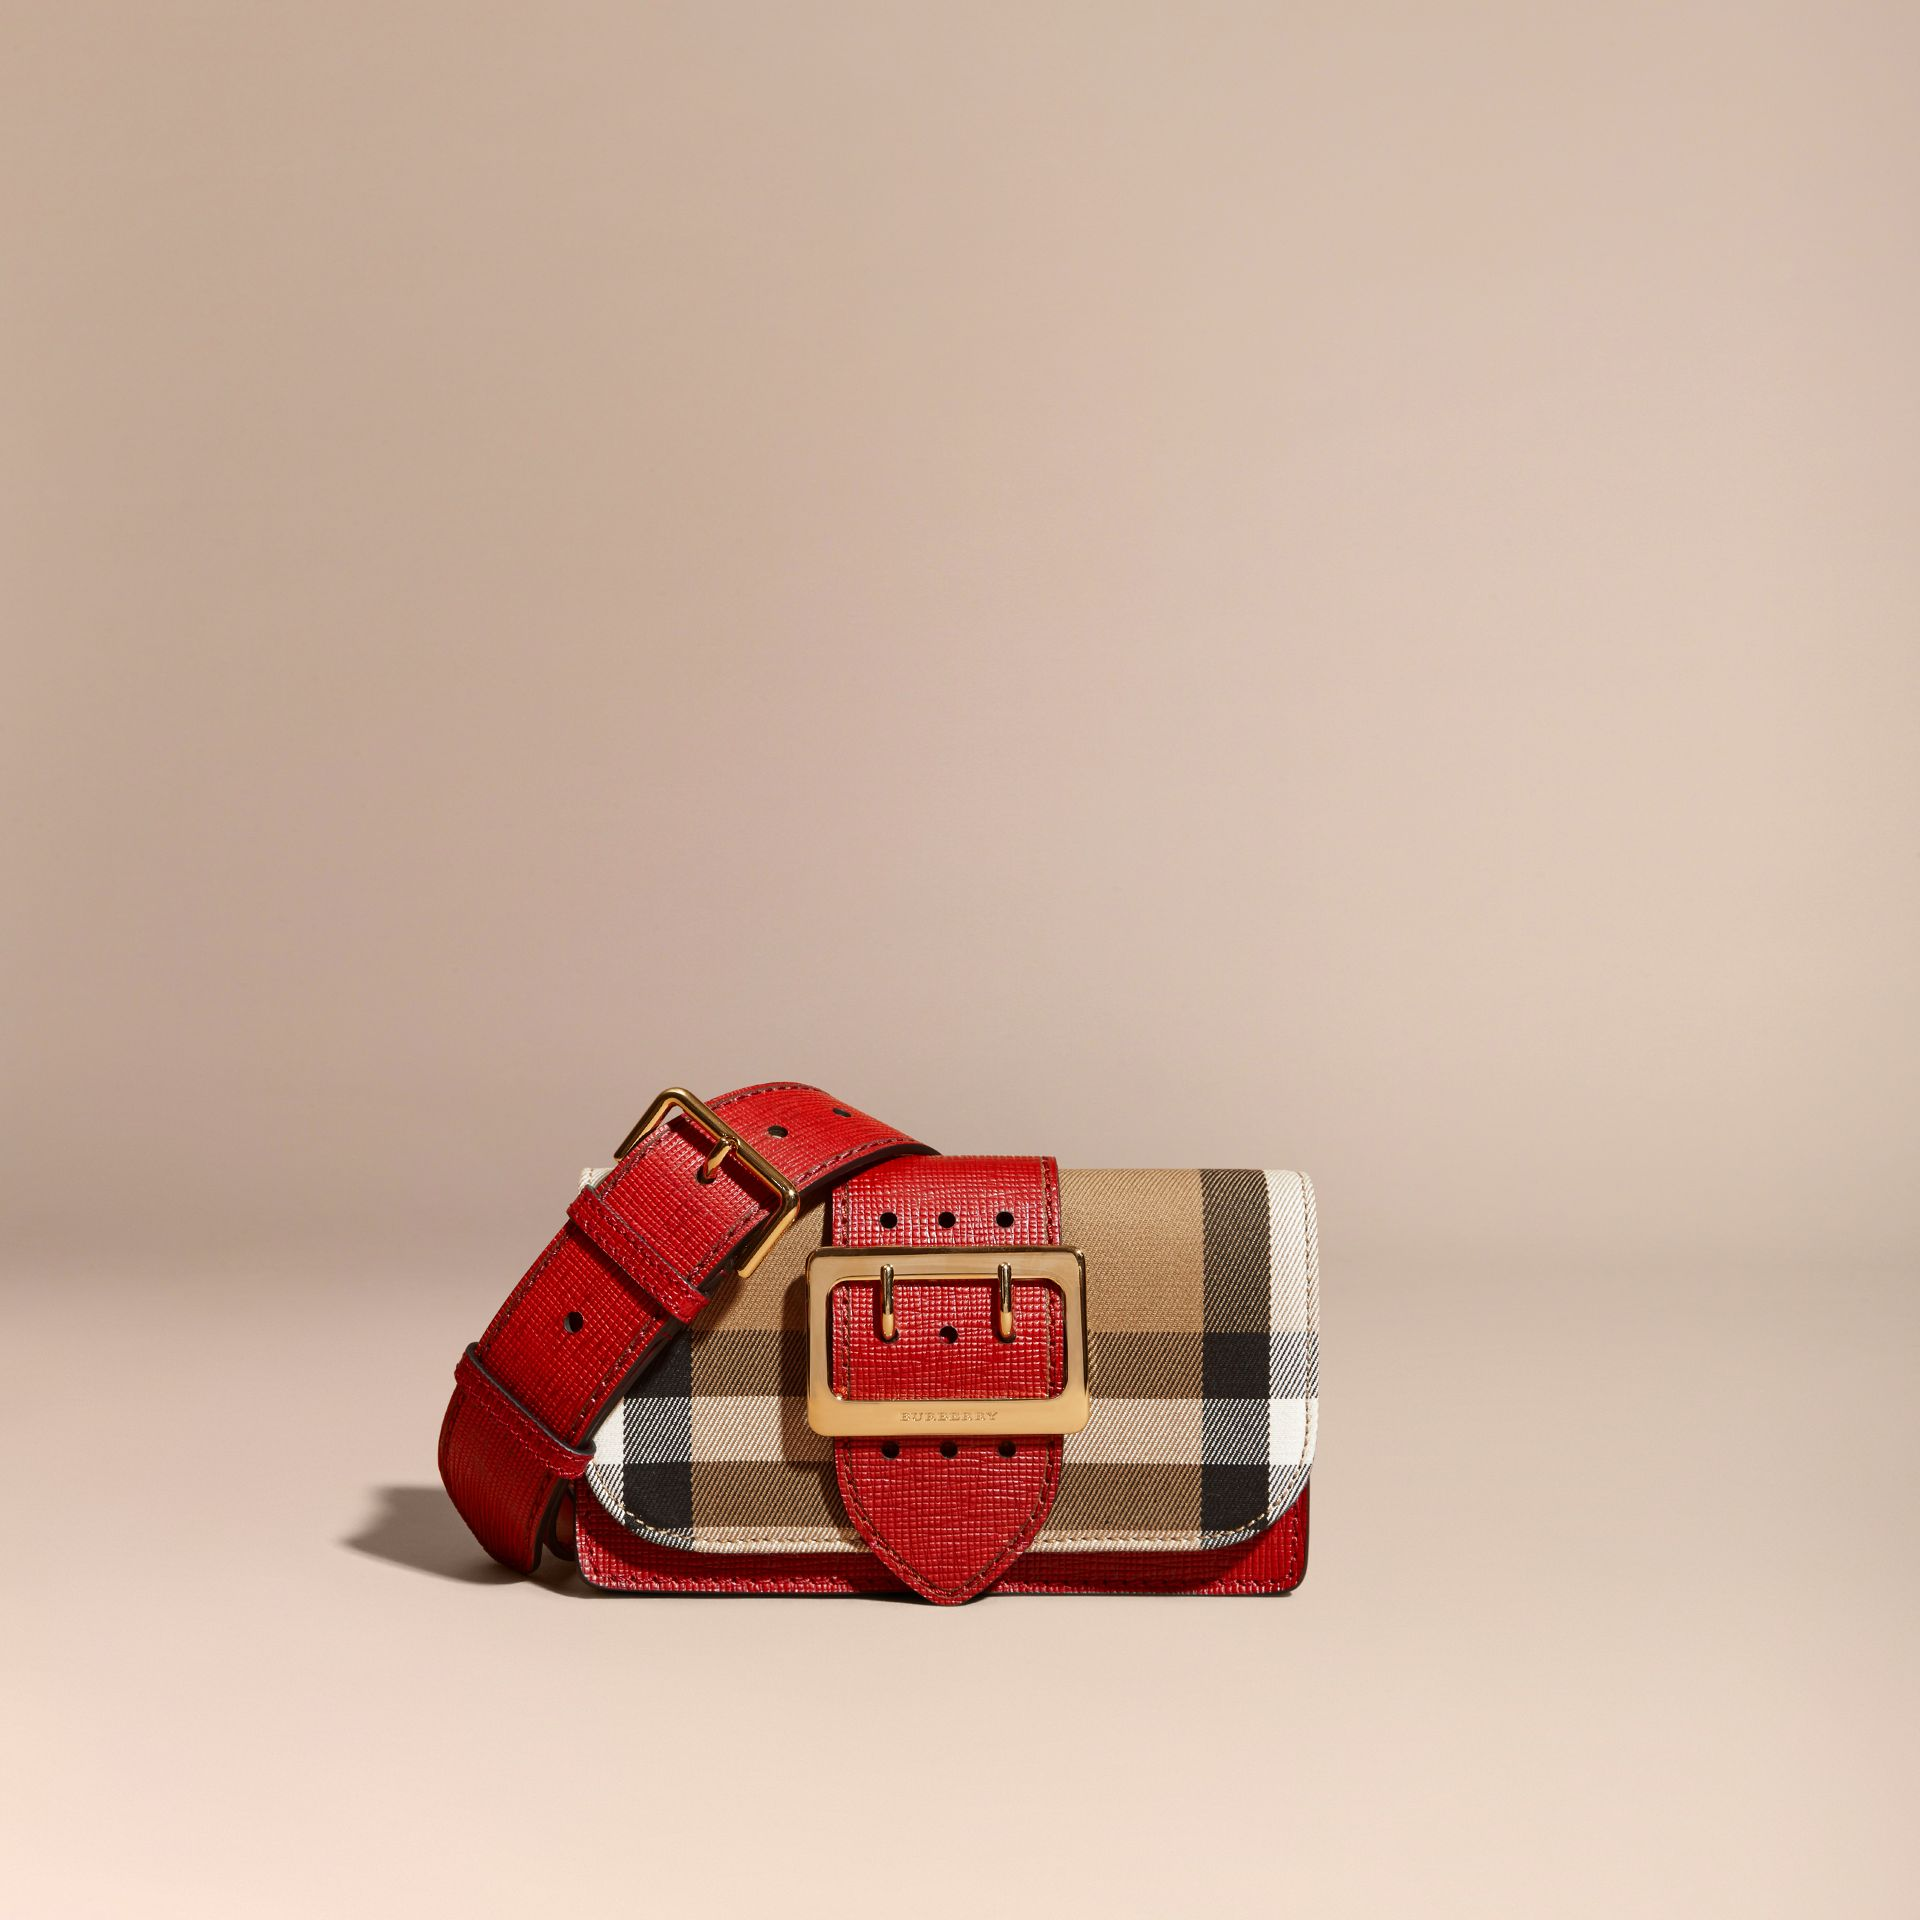 The Small Buckle Bag in House Check and Leather in Military Red/military Red - Women | Burberry - gallery image 9